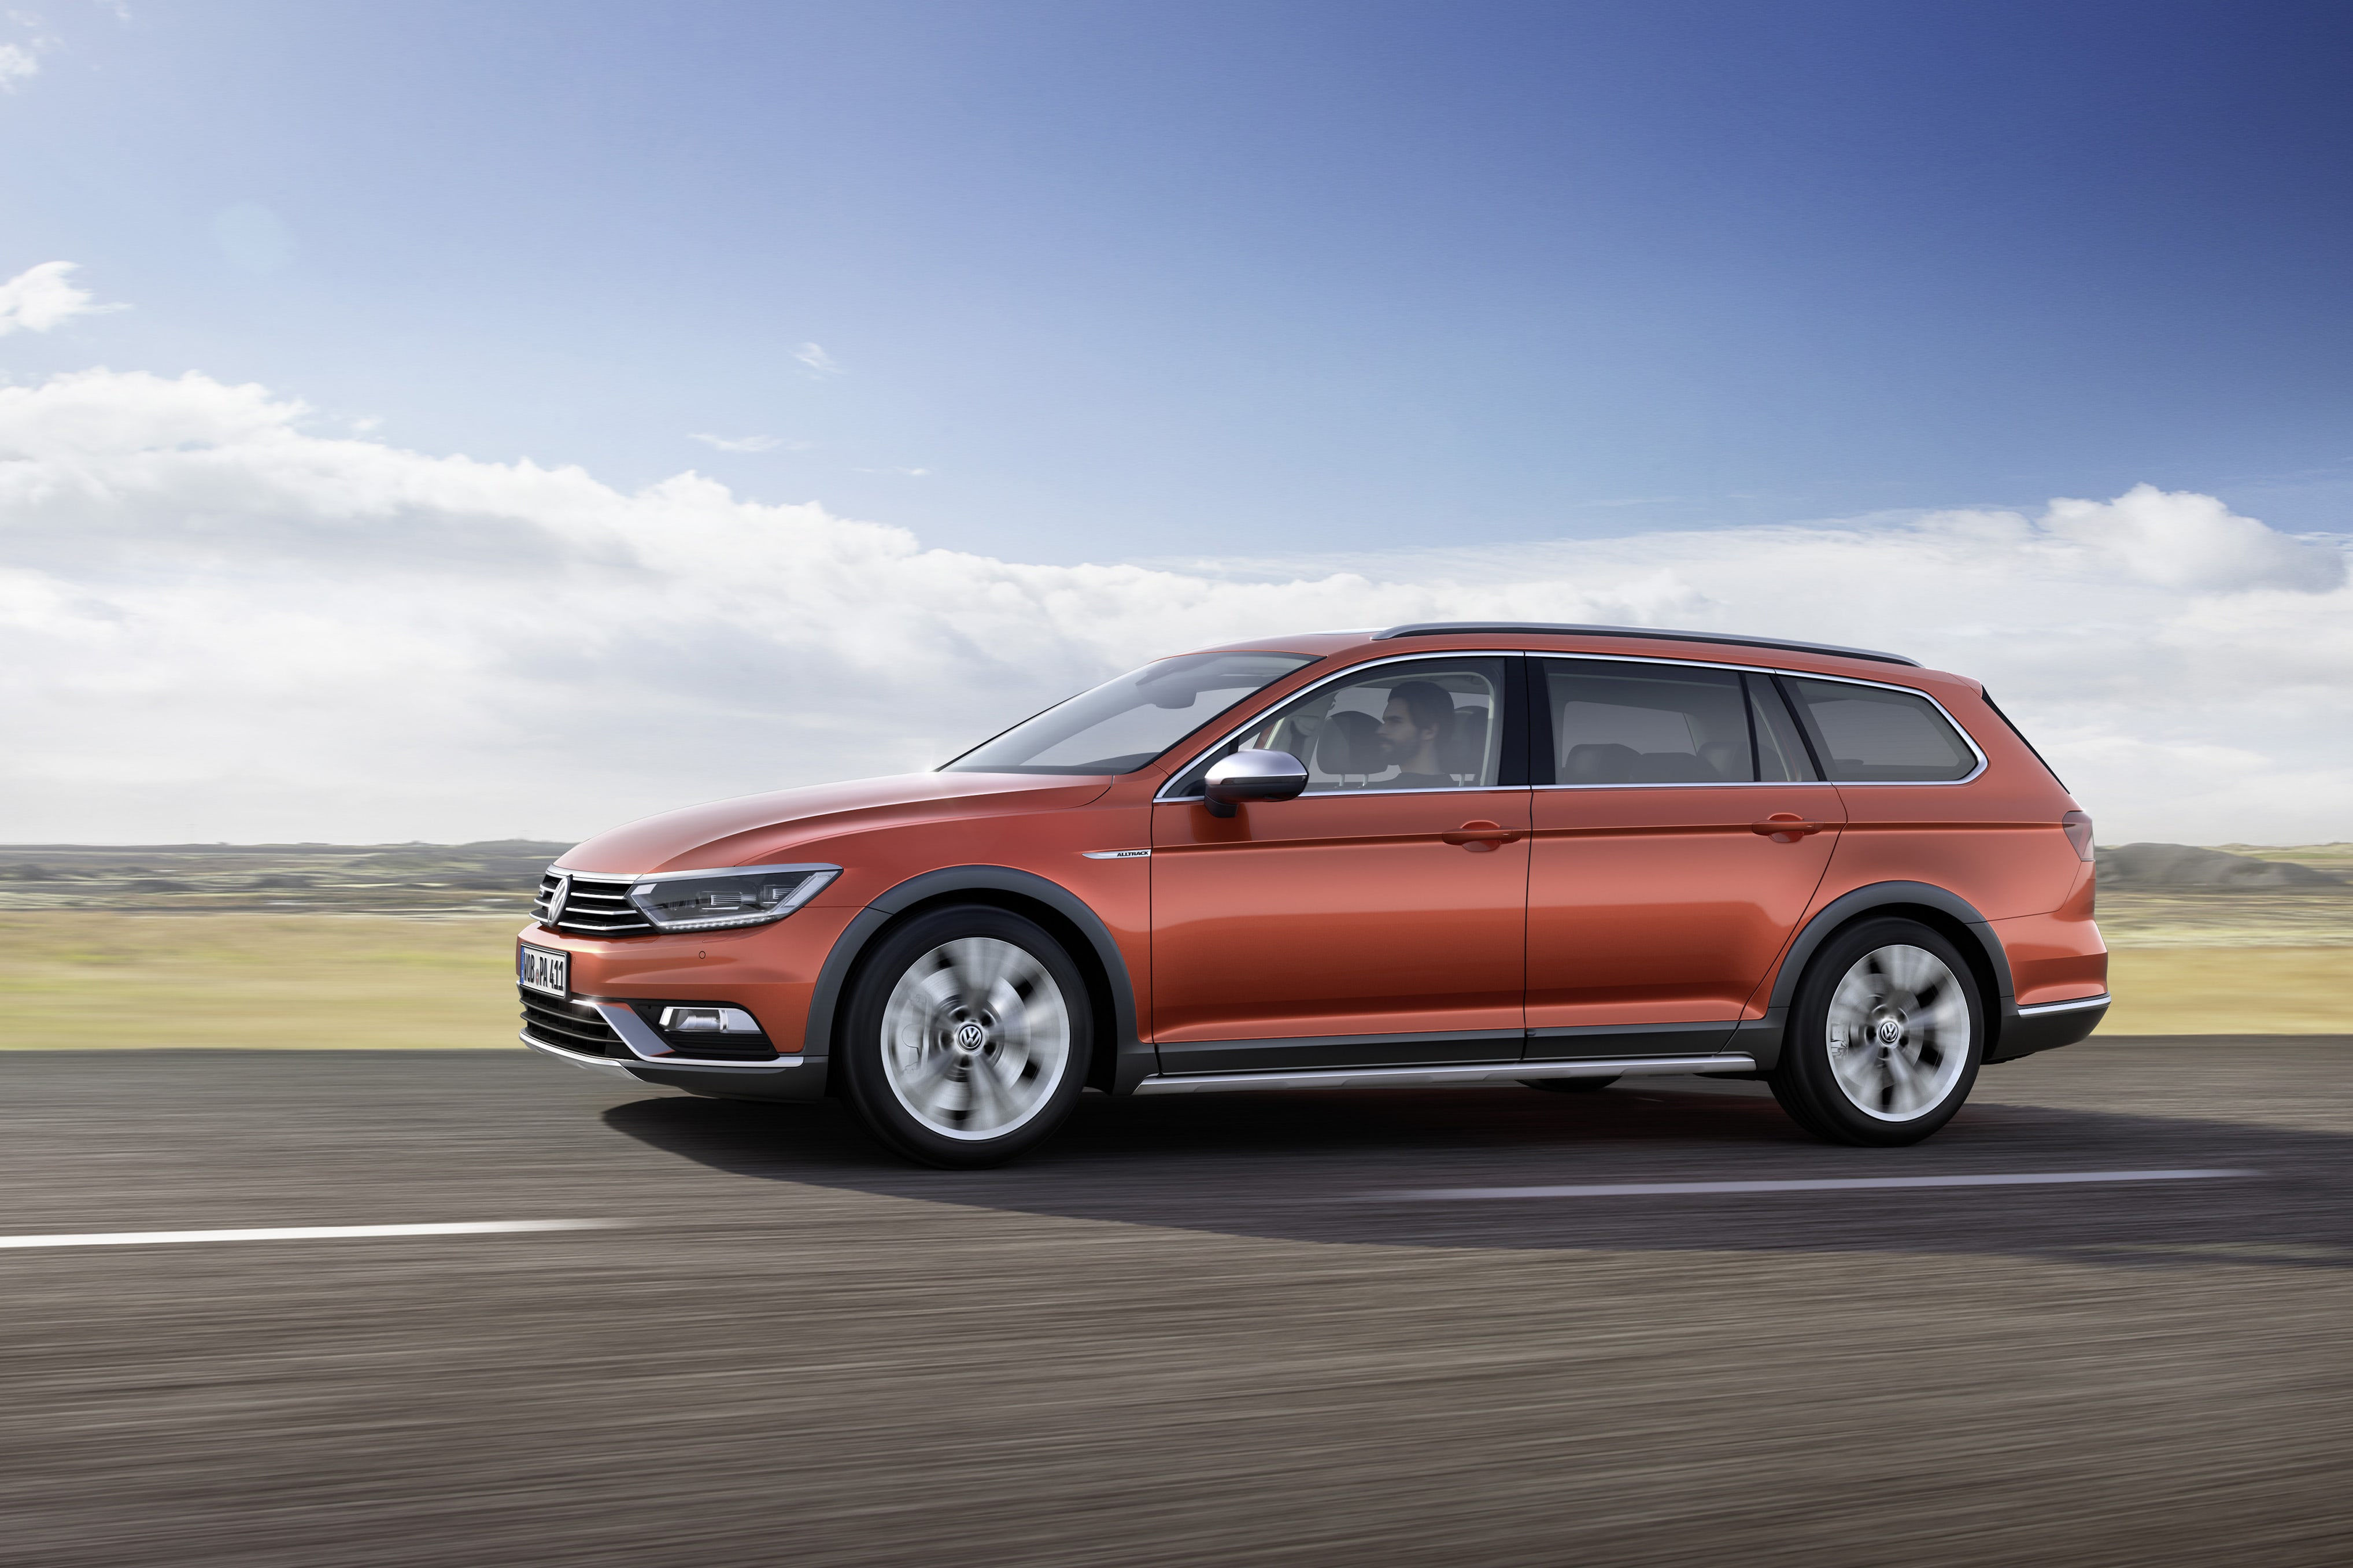 Volkswagen Passat B8 Alltrack Wallpapers hd